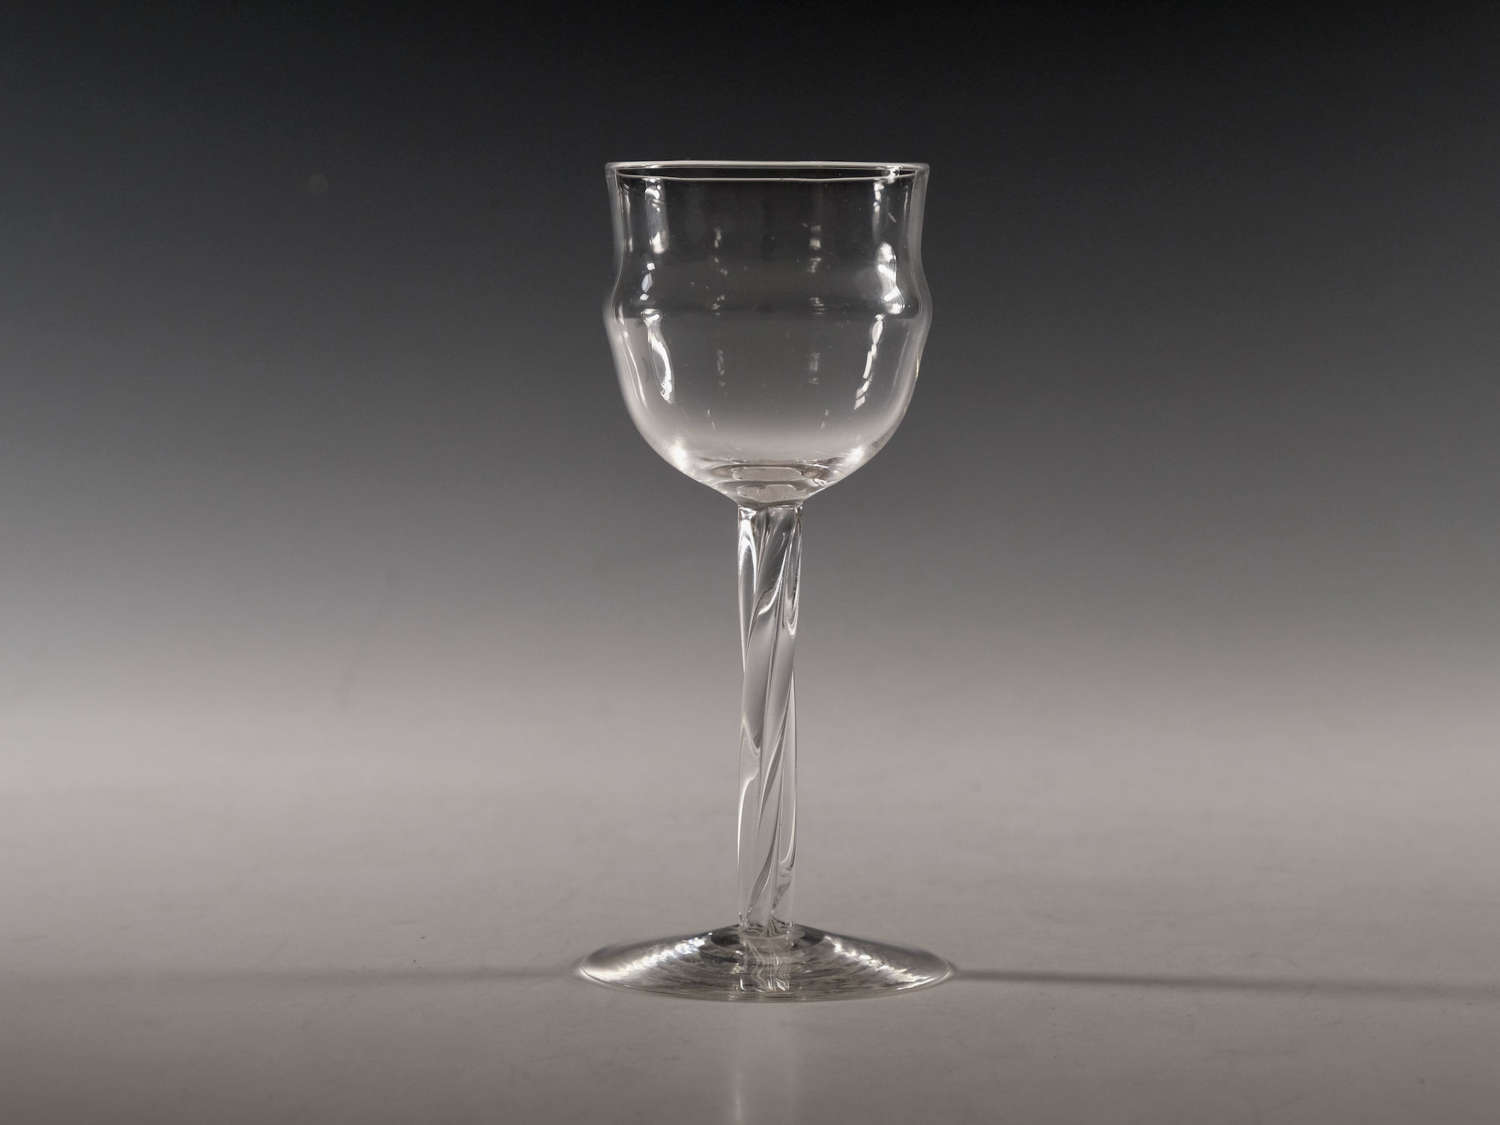 Antique wine glass by Philip Webb c1900